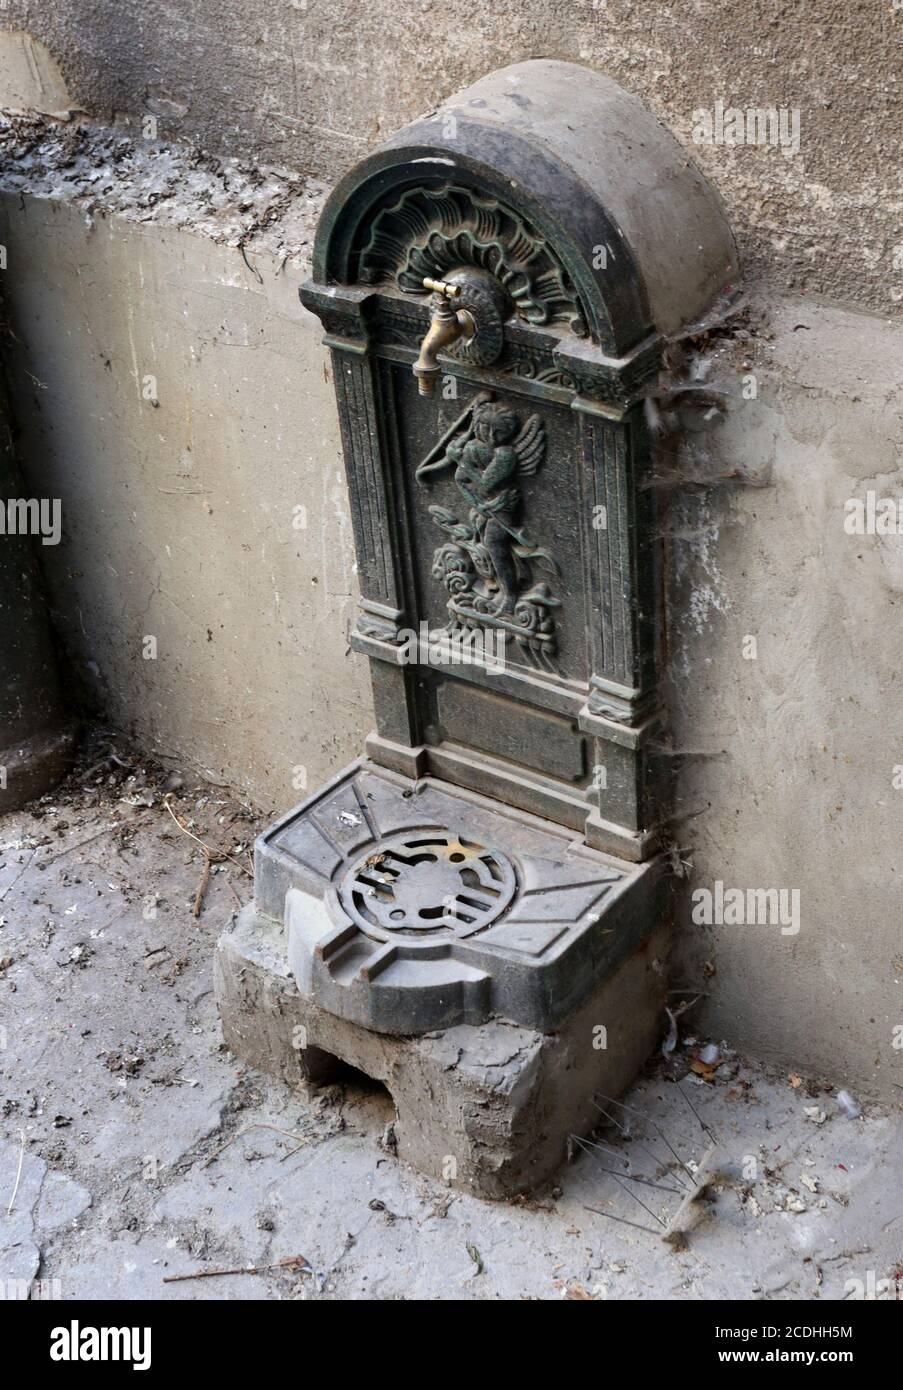 https www alamy com cracow krakow poland old iron casted water fountain with faucet in the inner yard of the old town building image369794928 html